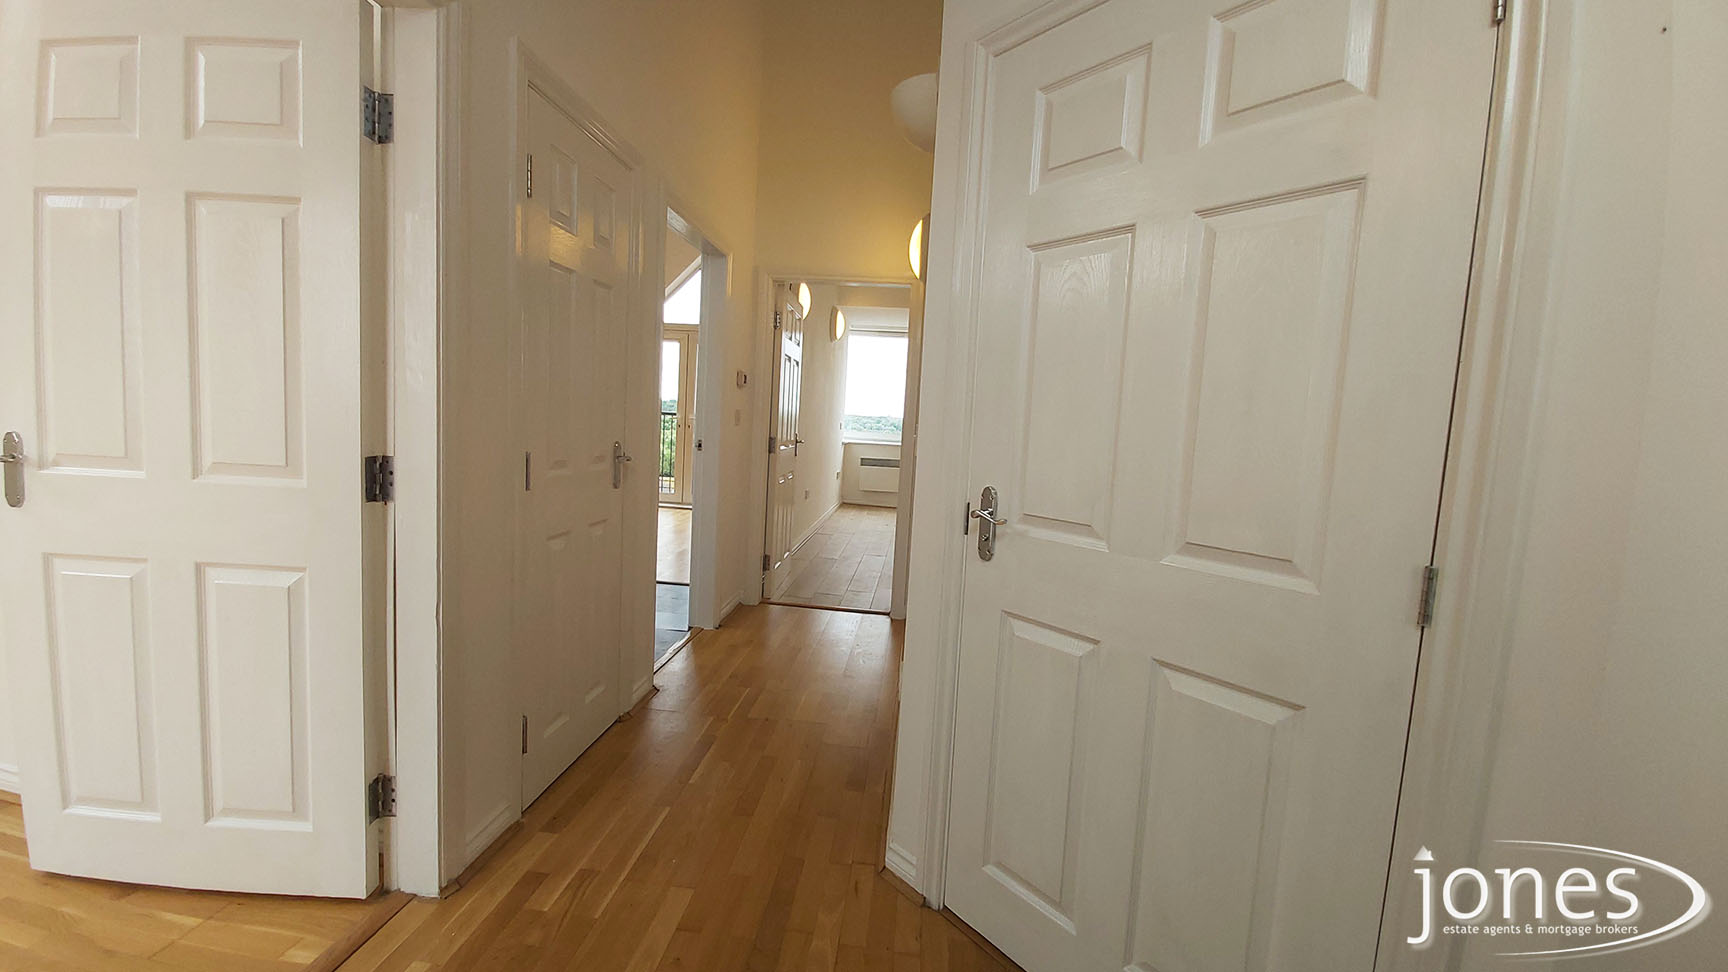 Home for Sale Let - Photo 09 Willow Sage Court, Stockton on Tees, TS18 3UQ